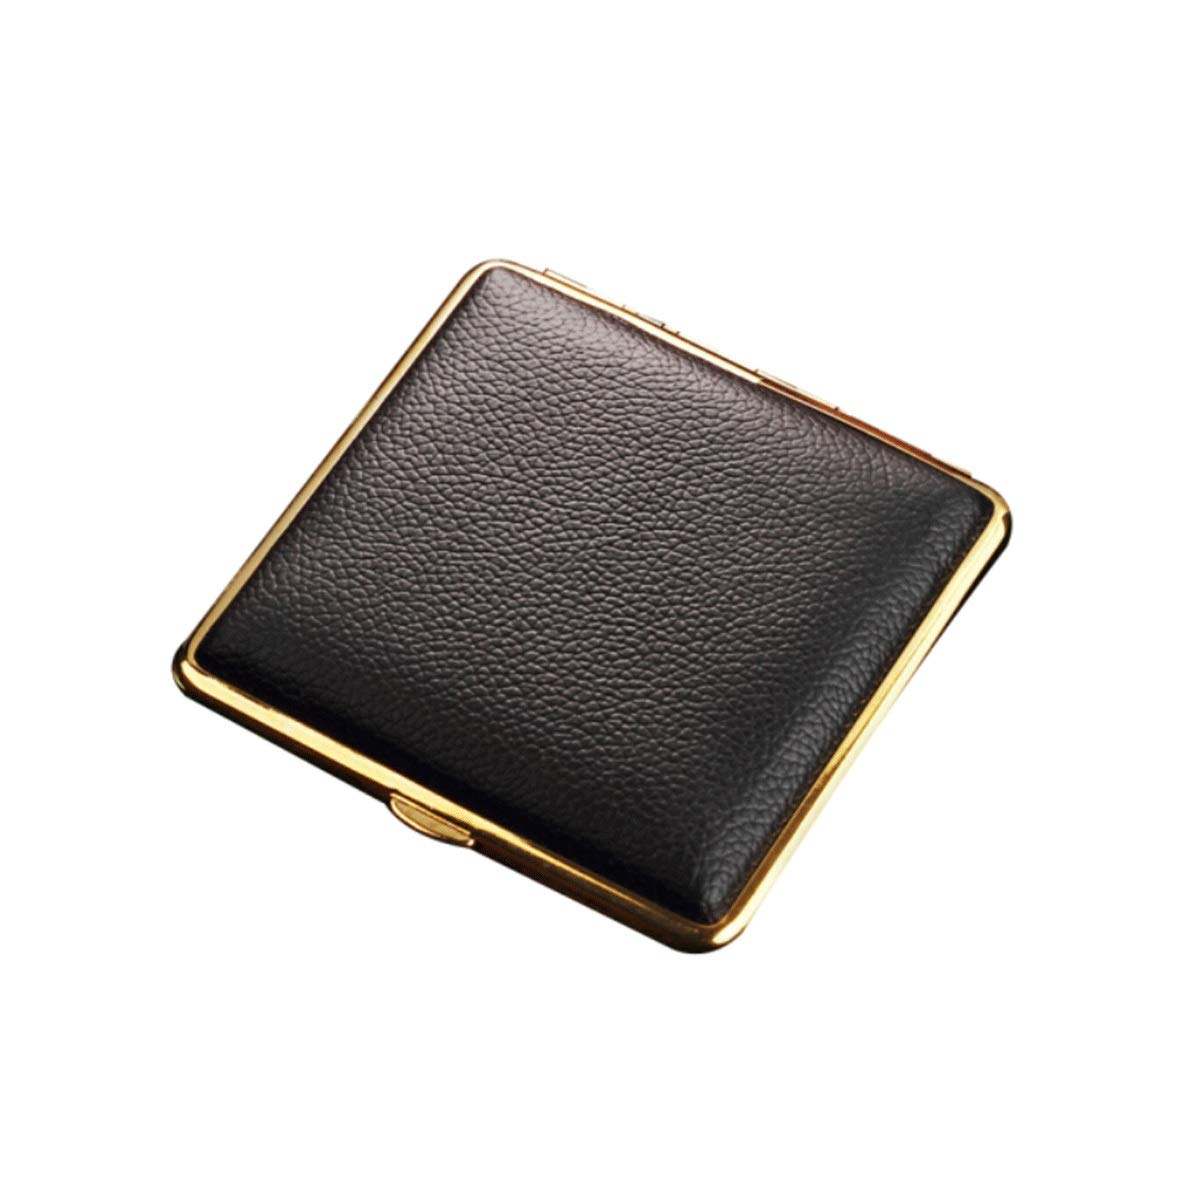 WENPINHUI Cigarette Case Automatically Open Ultra-Thin Cortical Magnet Cigarette Box Creative Moisture-Proof Anti-Pressure Men's Cigarette Case Can Hold 20 Cigarettes by WENPINHUI